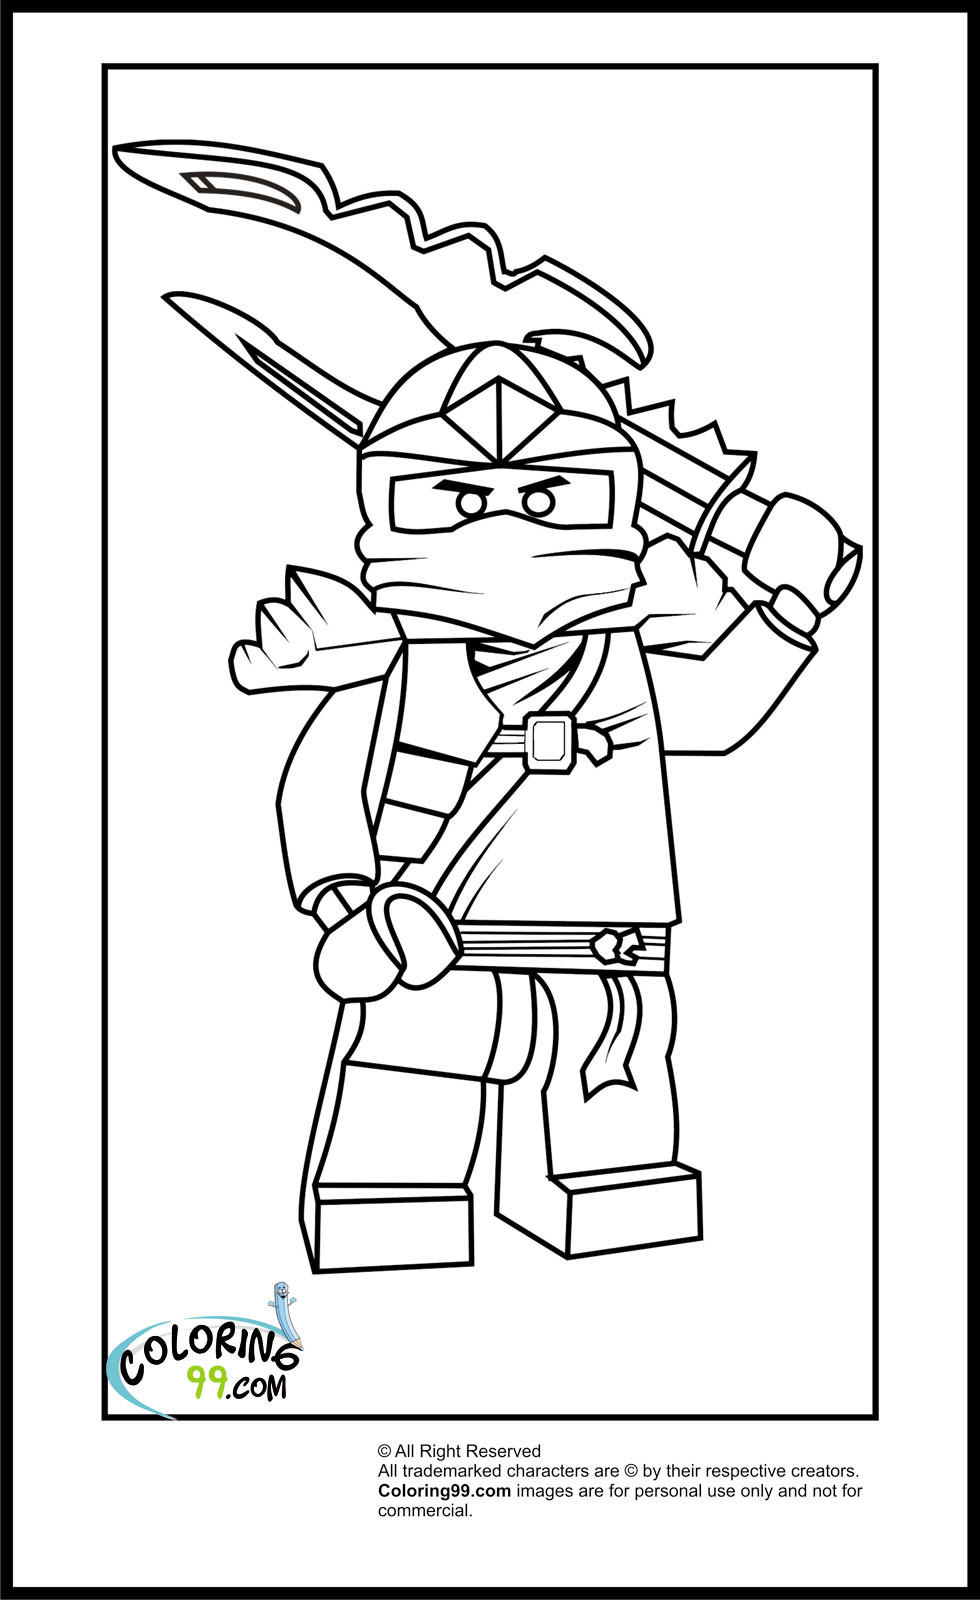 Best ideas about Ninjago Coloring Pages For Kids . Save or Pin Lego Ninjago Coloring Pages Free Printable Now.